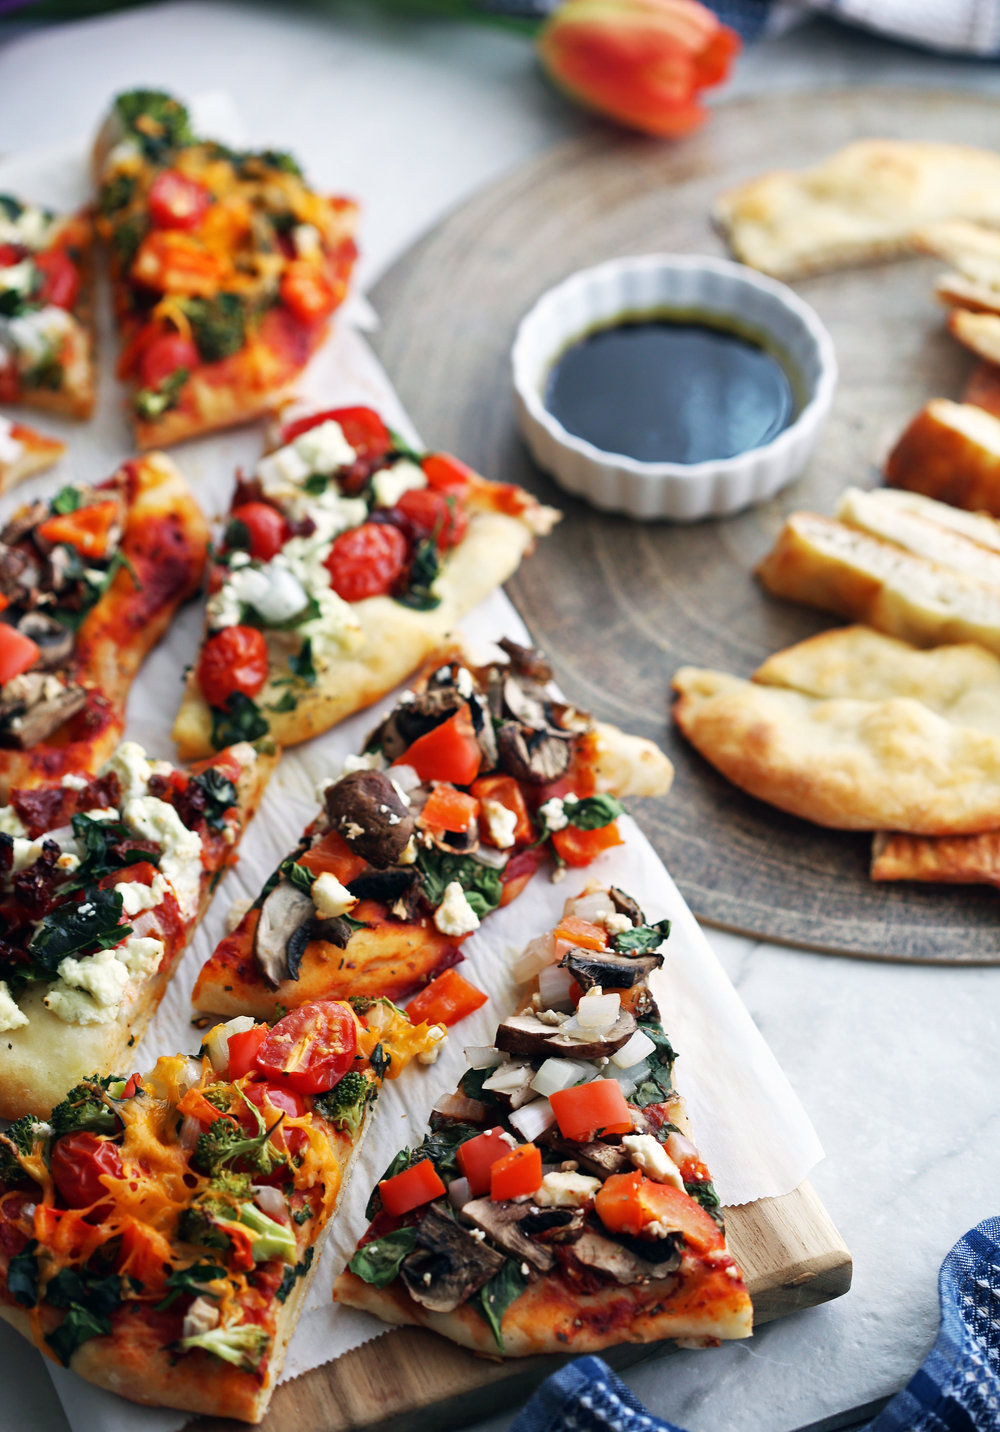 Two platters containing flatbread pizza with various toppings and plain flatbread sliced into pieces.